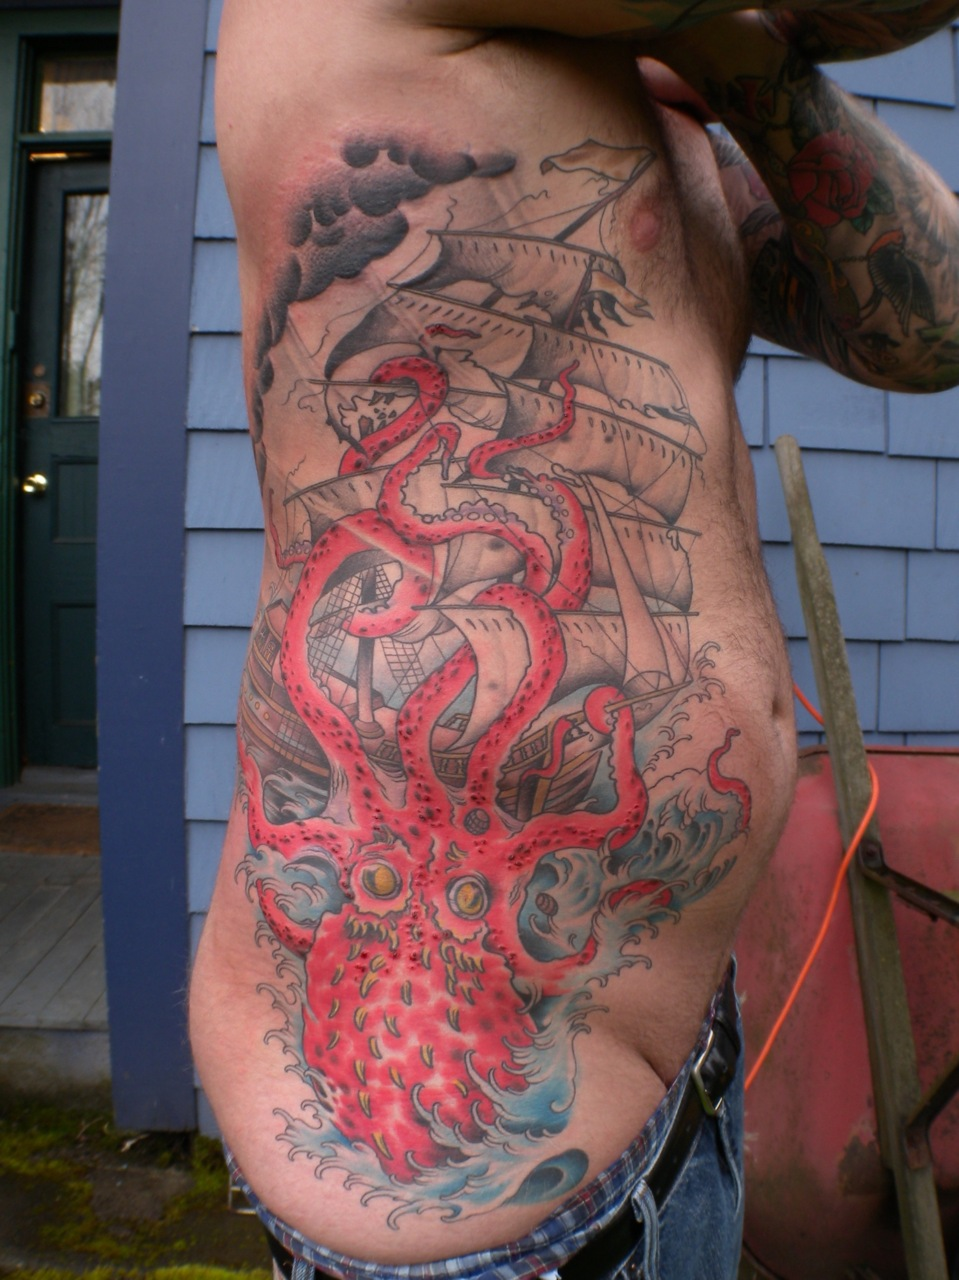 fuckyeahtattoos :     jacobredmond.com, atlastattoo.com, redmondjacob.tumblr.com     #nightmarefuel